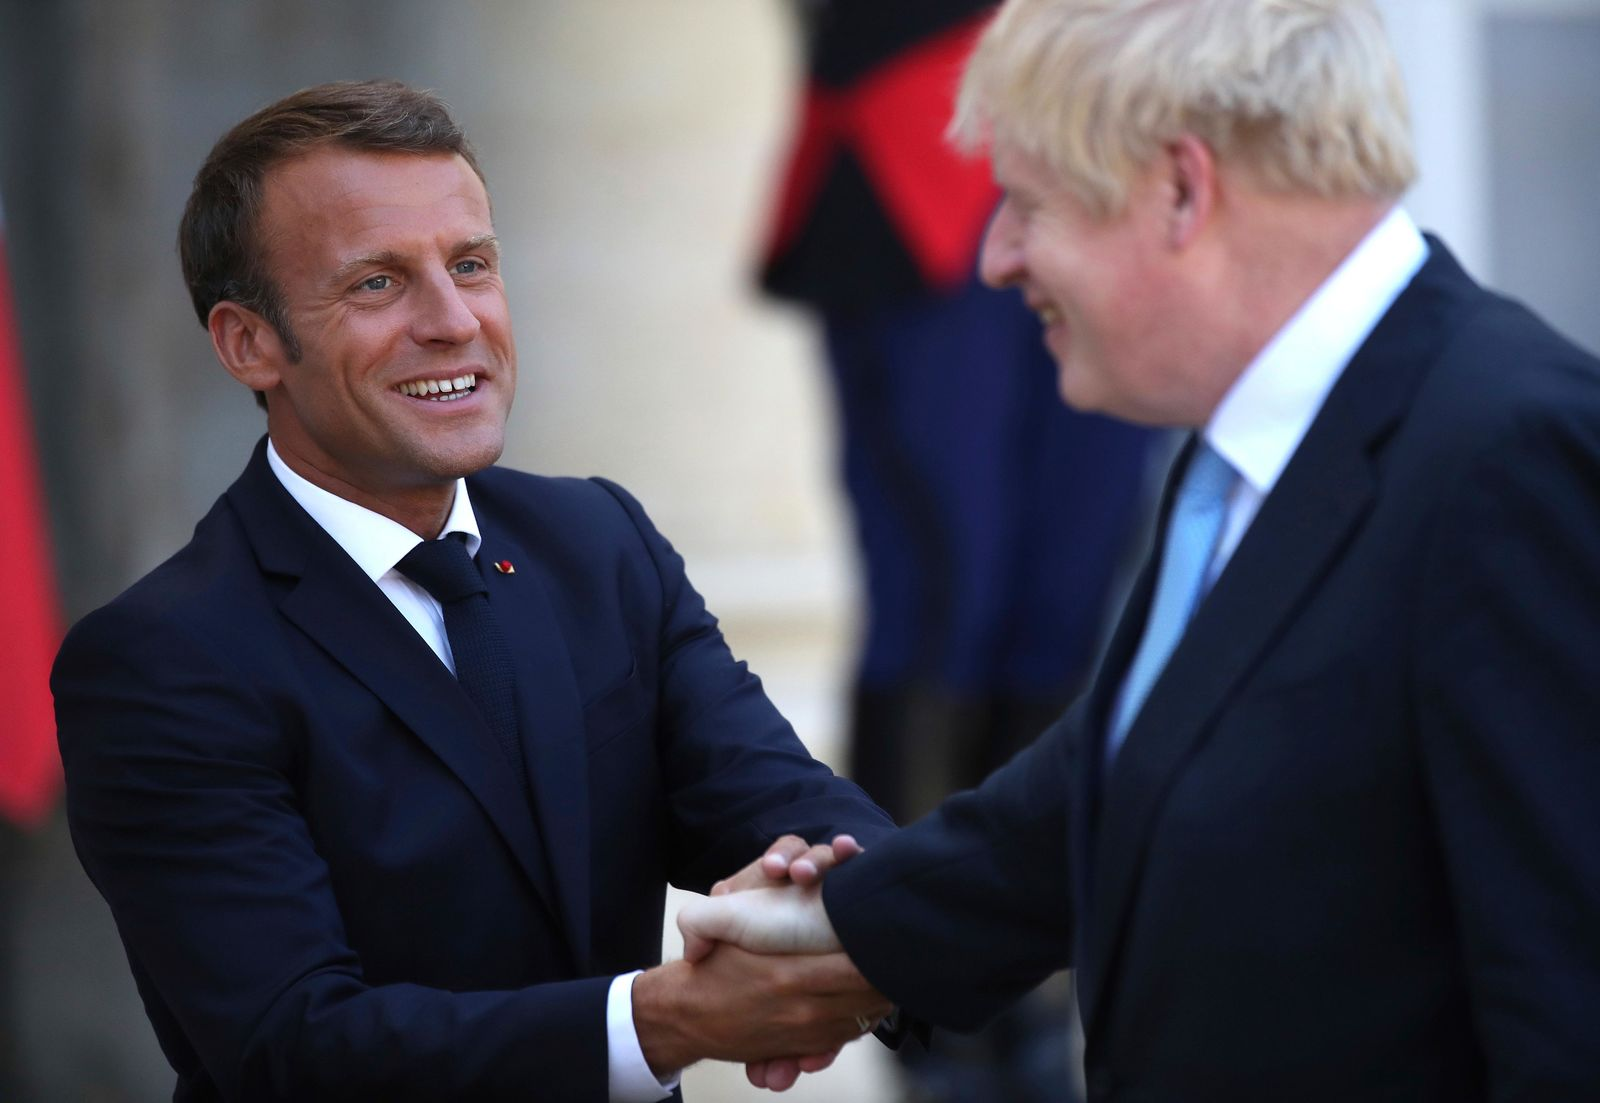 French President Emmanuel Macron bids farewell to Britain's Prime Minister Boris Johnson at the Elysee Palace, Thursday, Aug. 22, 2019 in Paris.{ } (AP Photo/Daniel Cole)